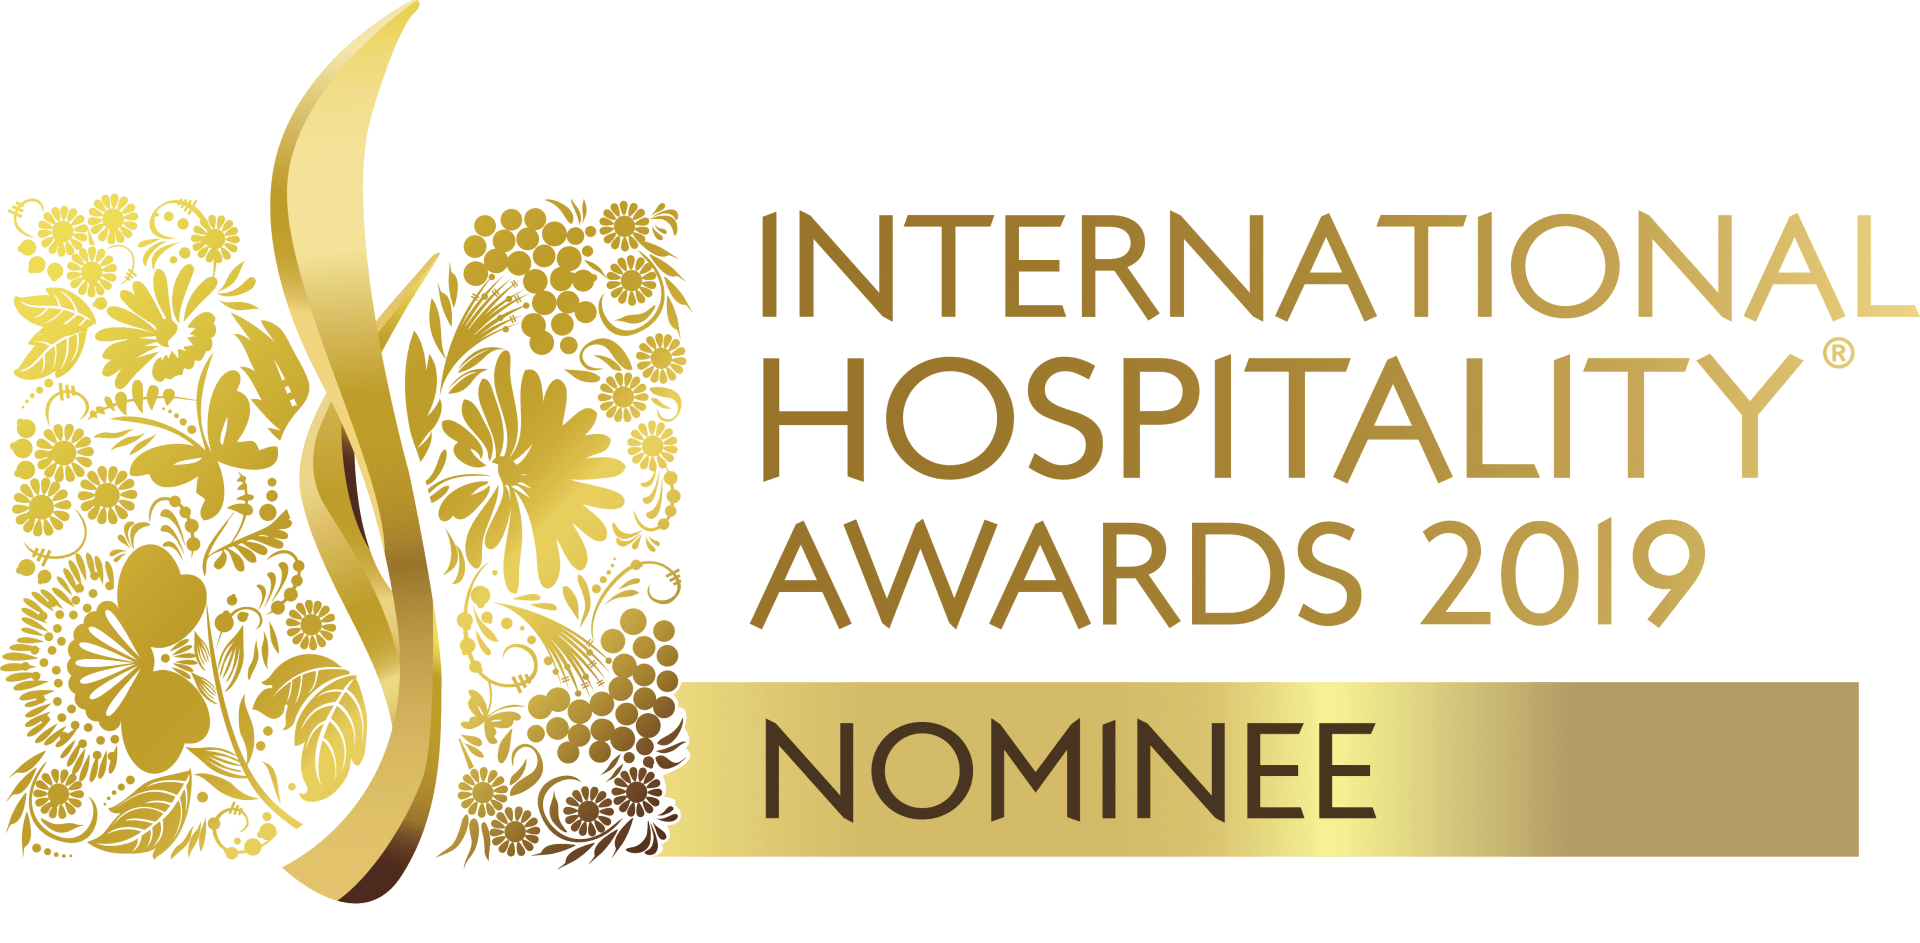 international hospitality awards 2019 nonminee